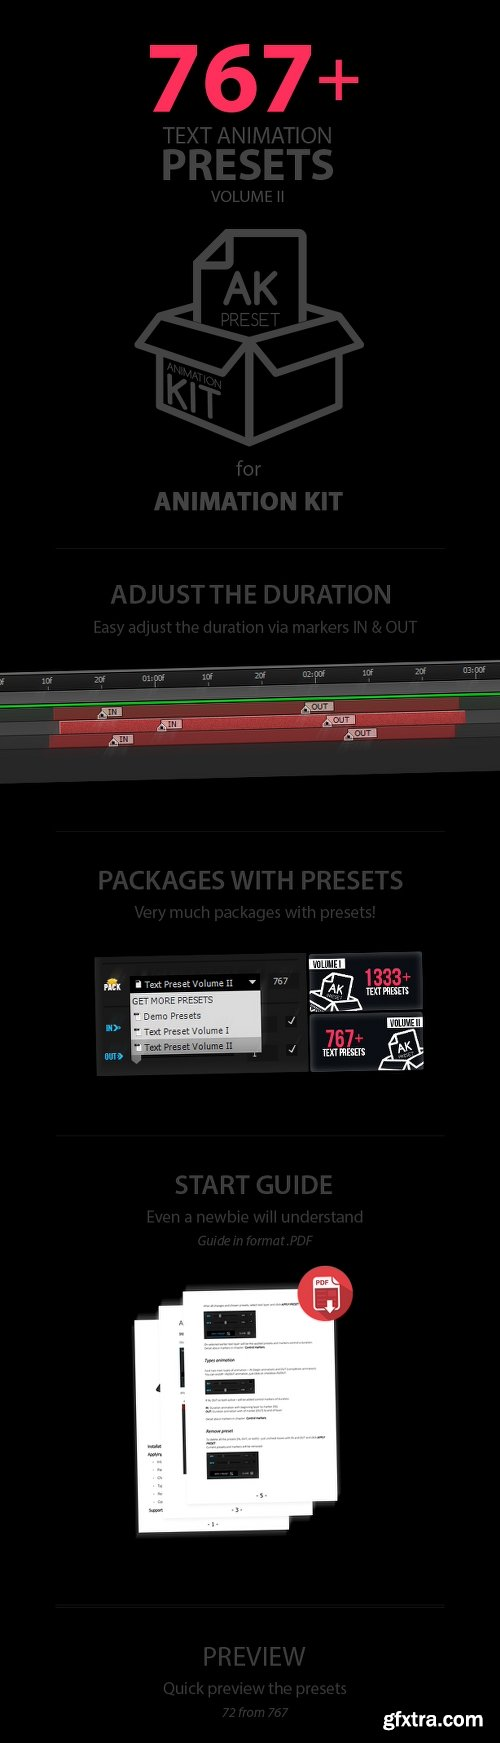 Videohive Text Preset Volume II for Animation Kit 16176453